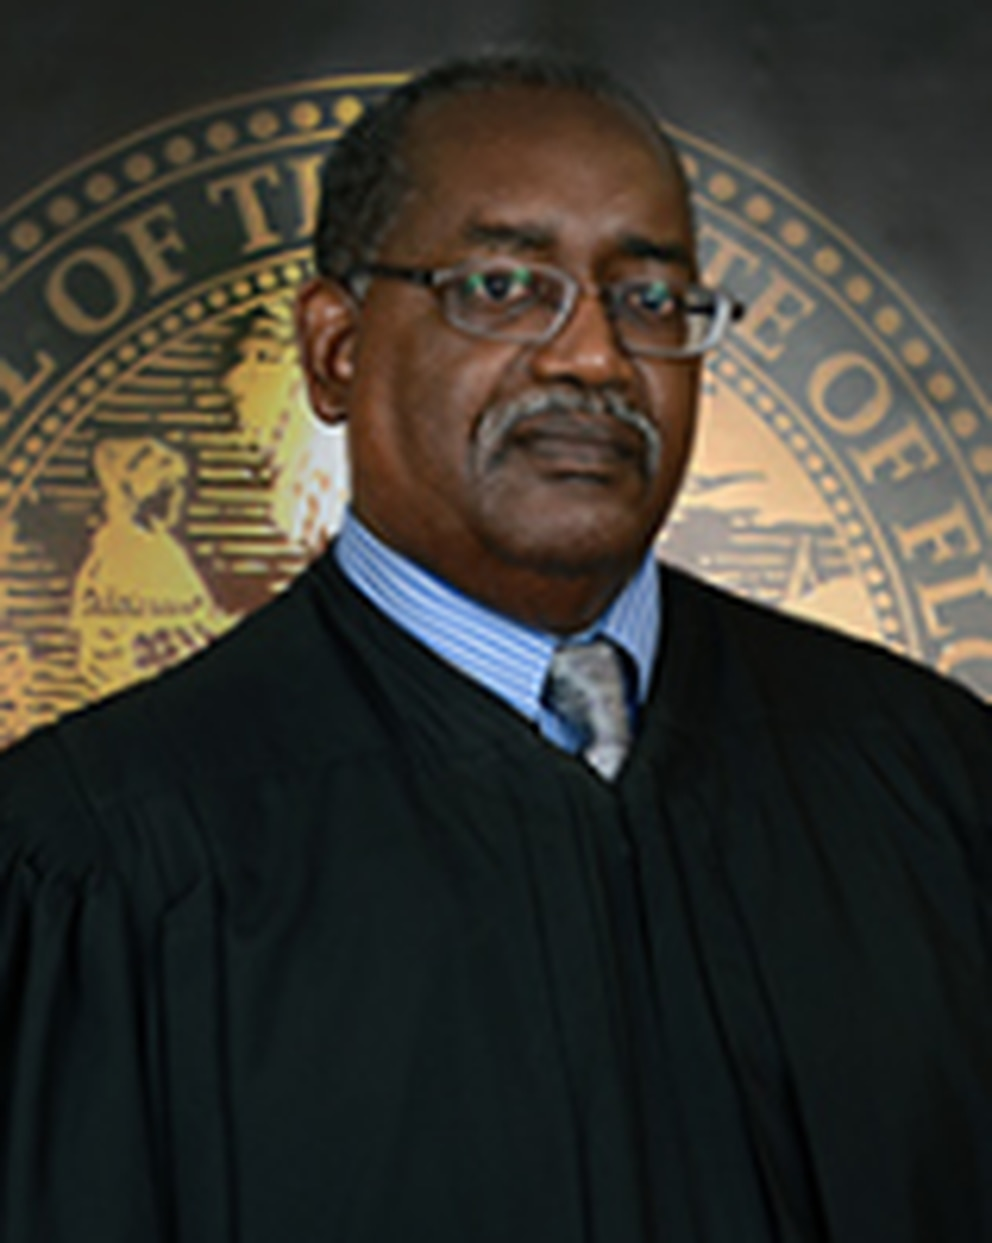 Rick Scott appoints first black judge to appellate court ...